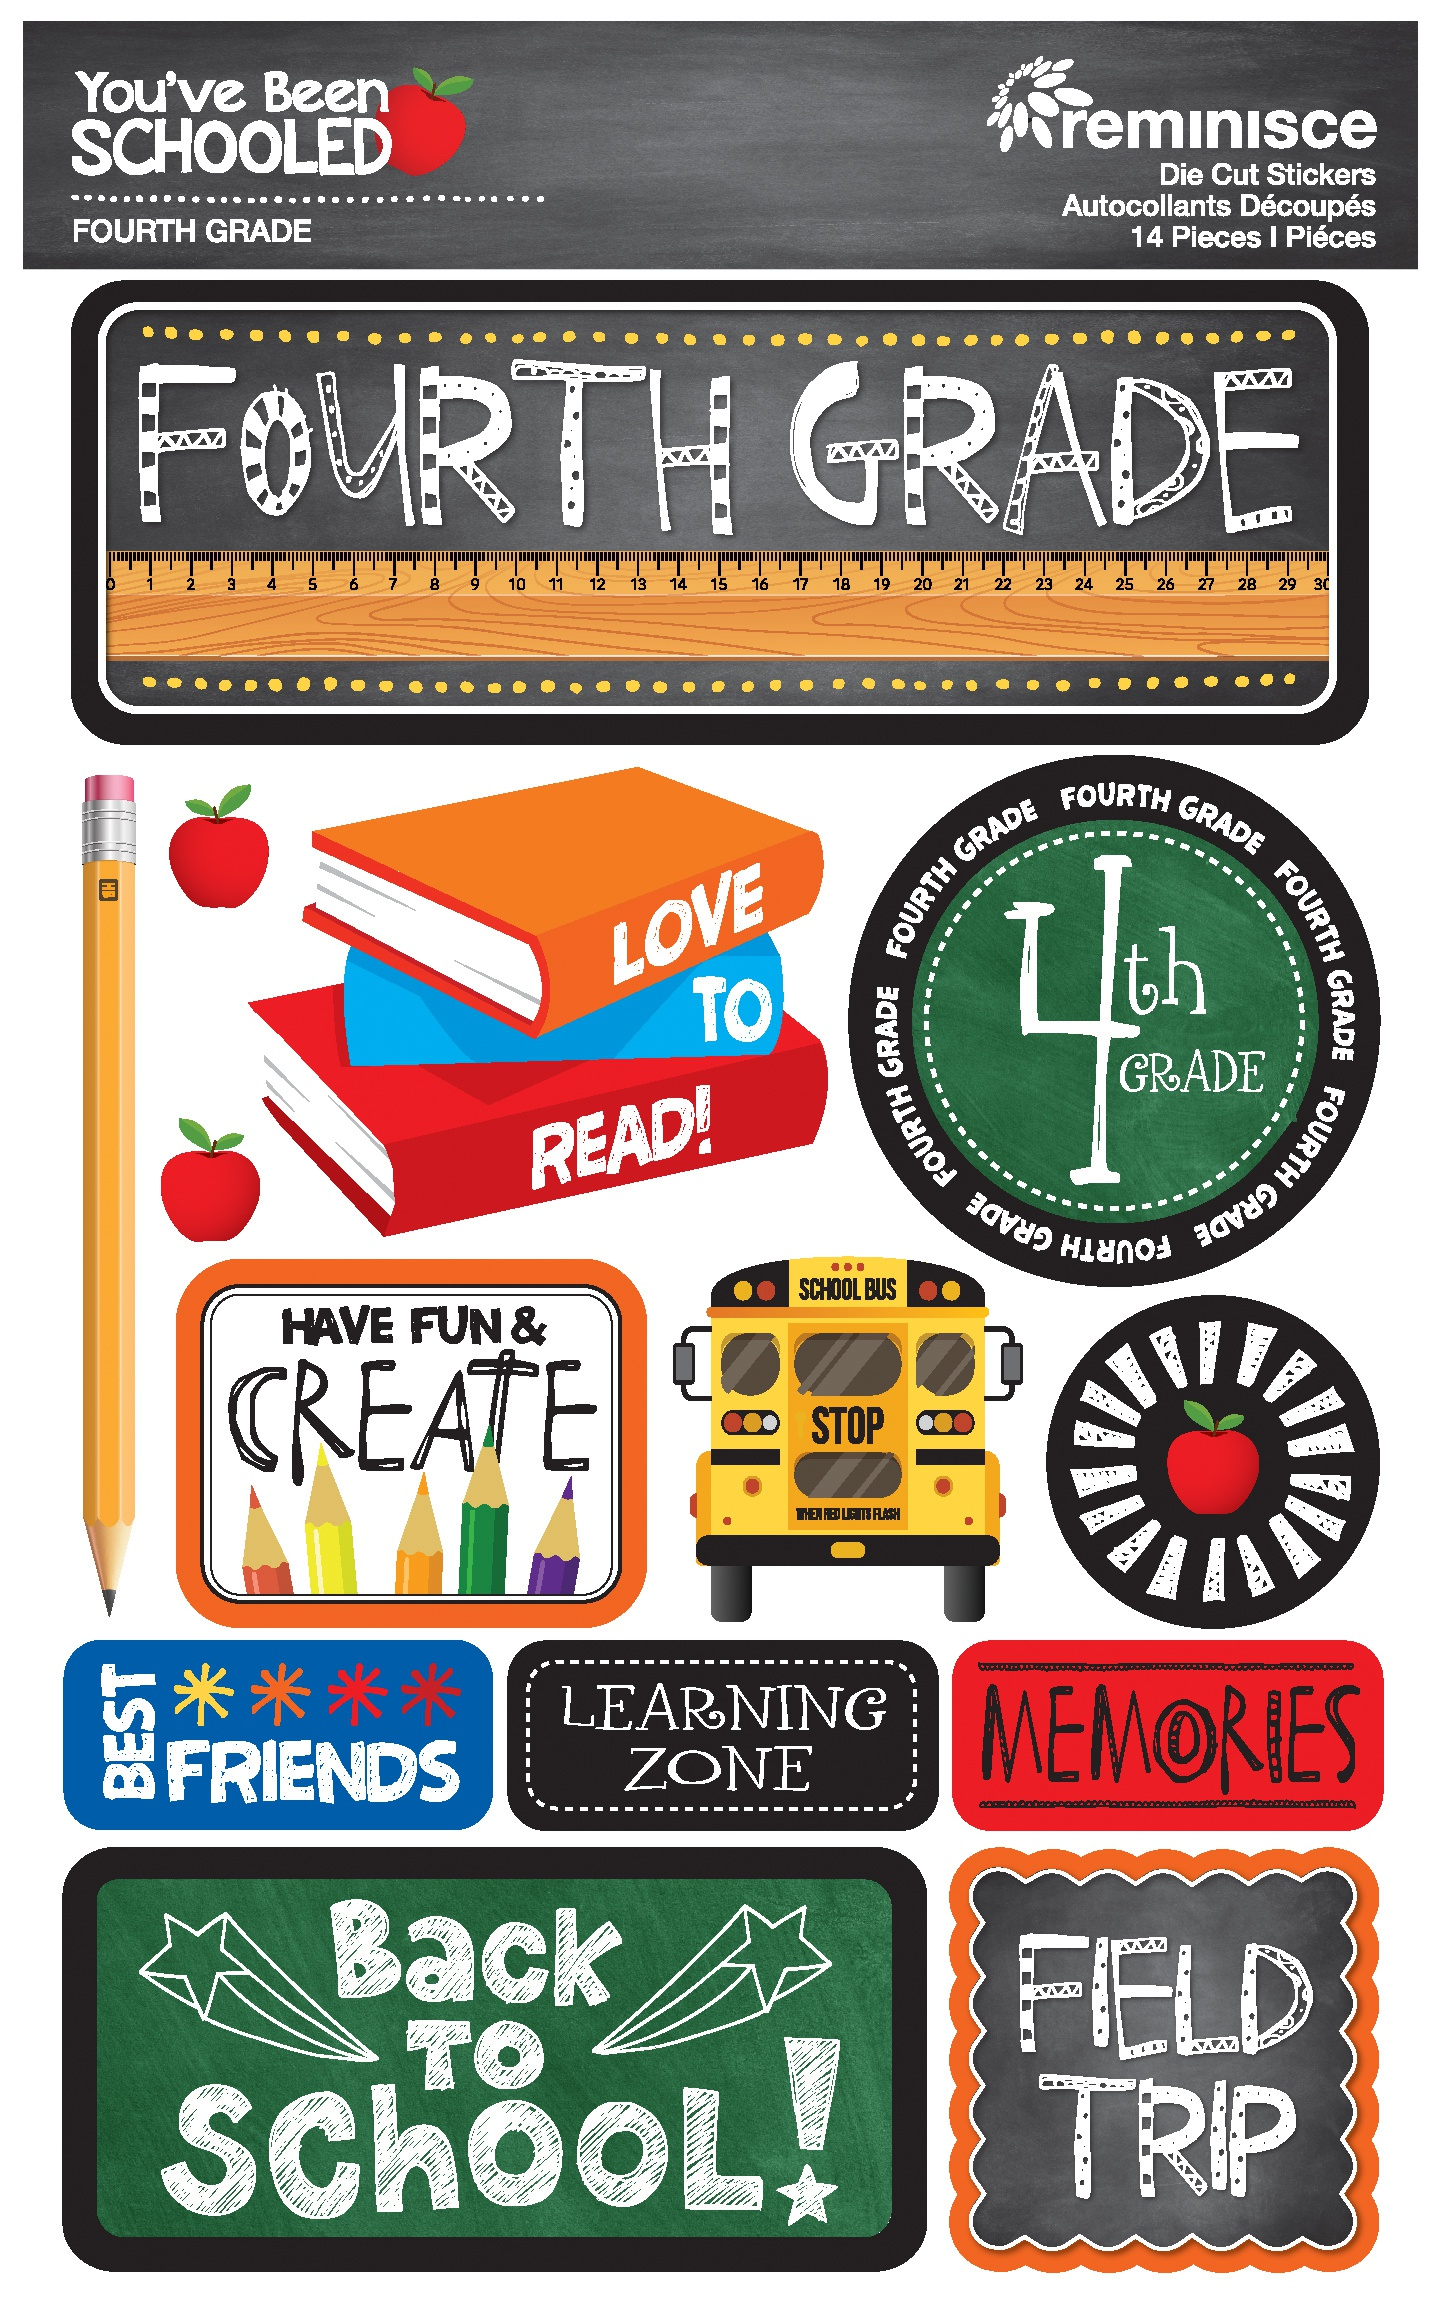 Reminisce You've Been Schooled -  4th Grade 3D Dimensional Stickers